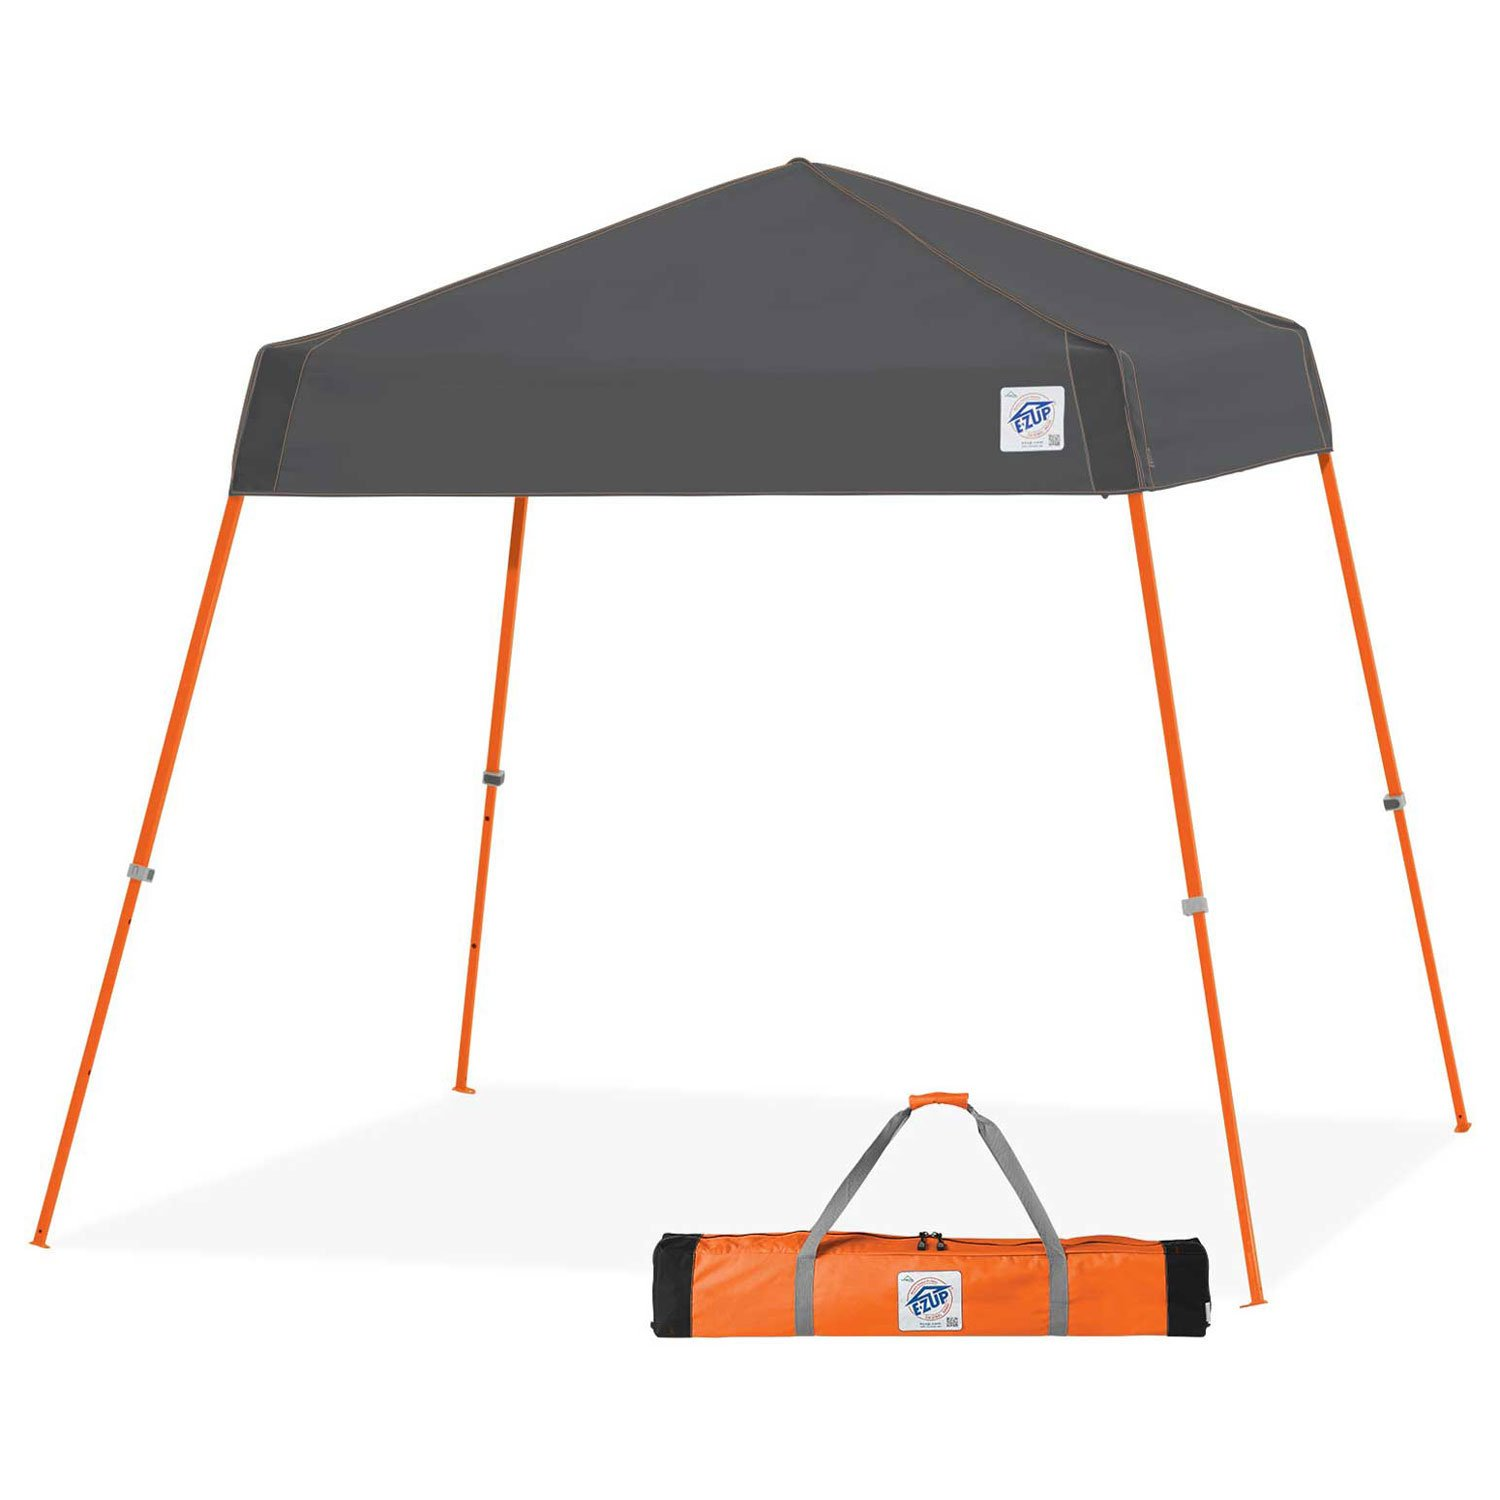 E Z Up Instant Shelter Parts : E z up vista sport instant shelter canopy by ft steel